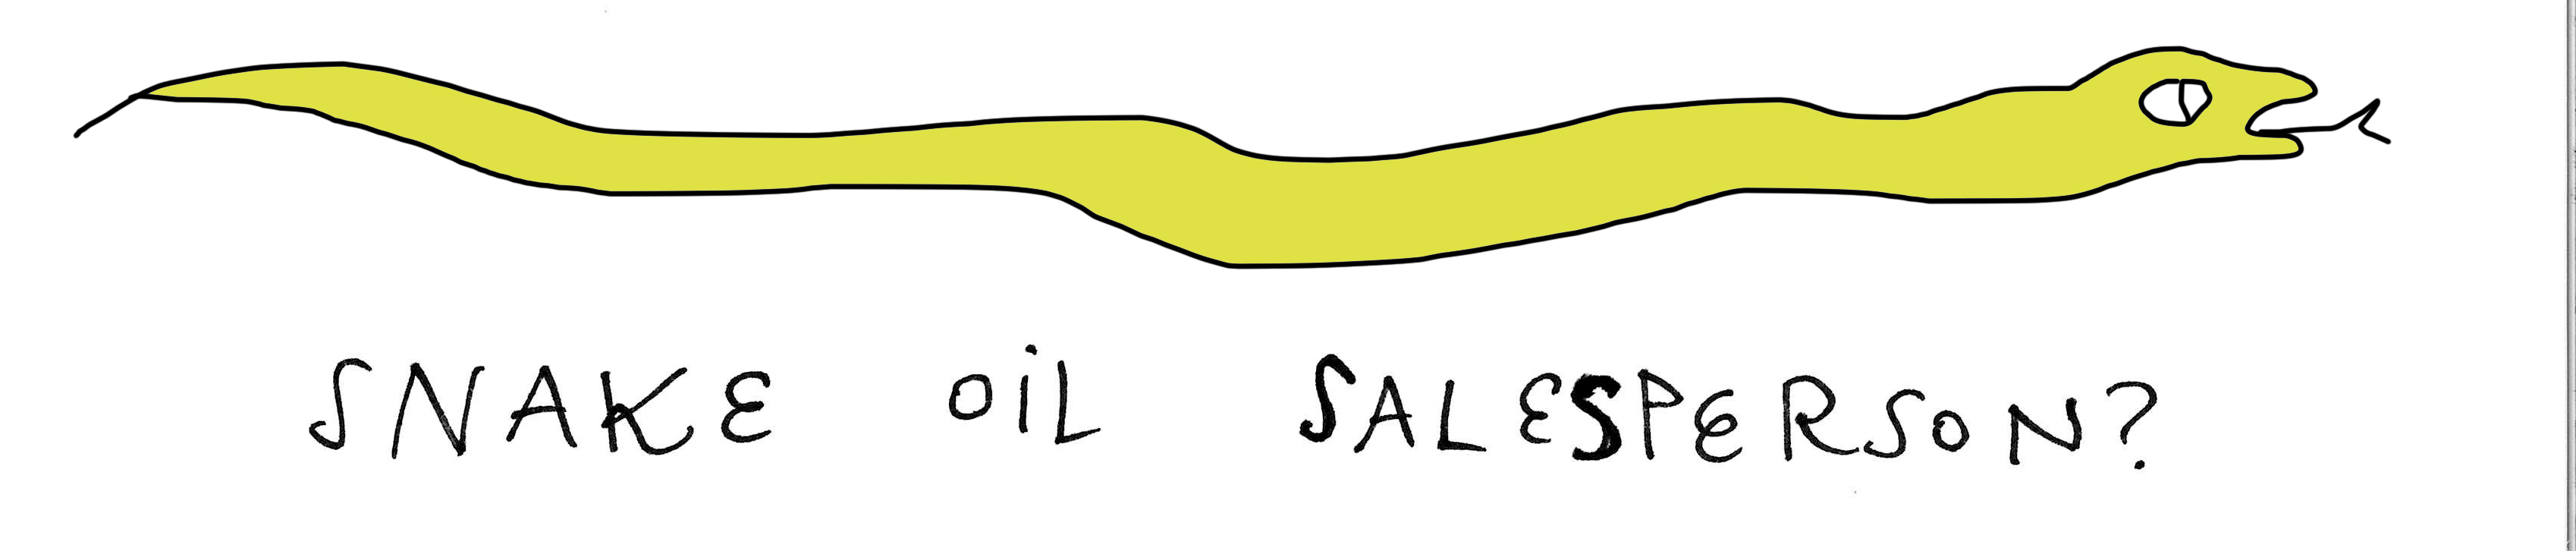 """Snake Oil Salesperson?"" graphic"